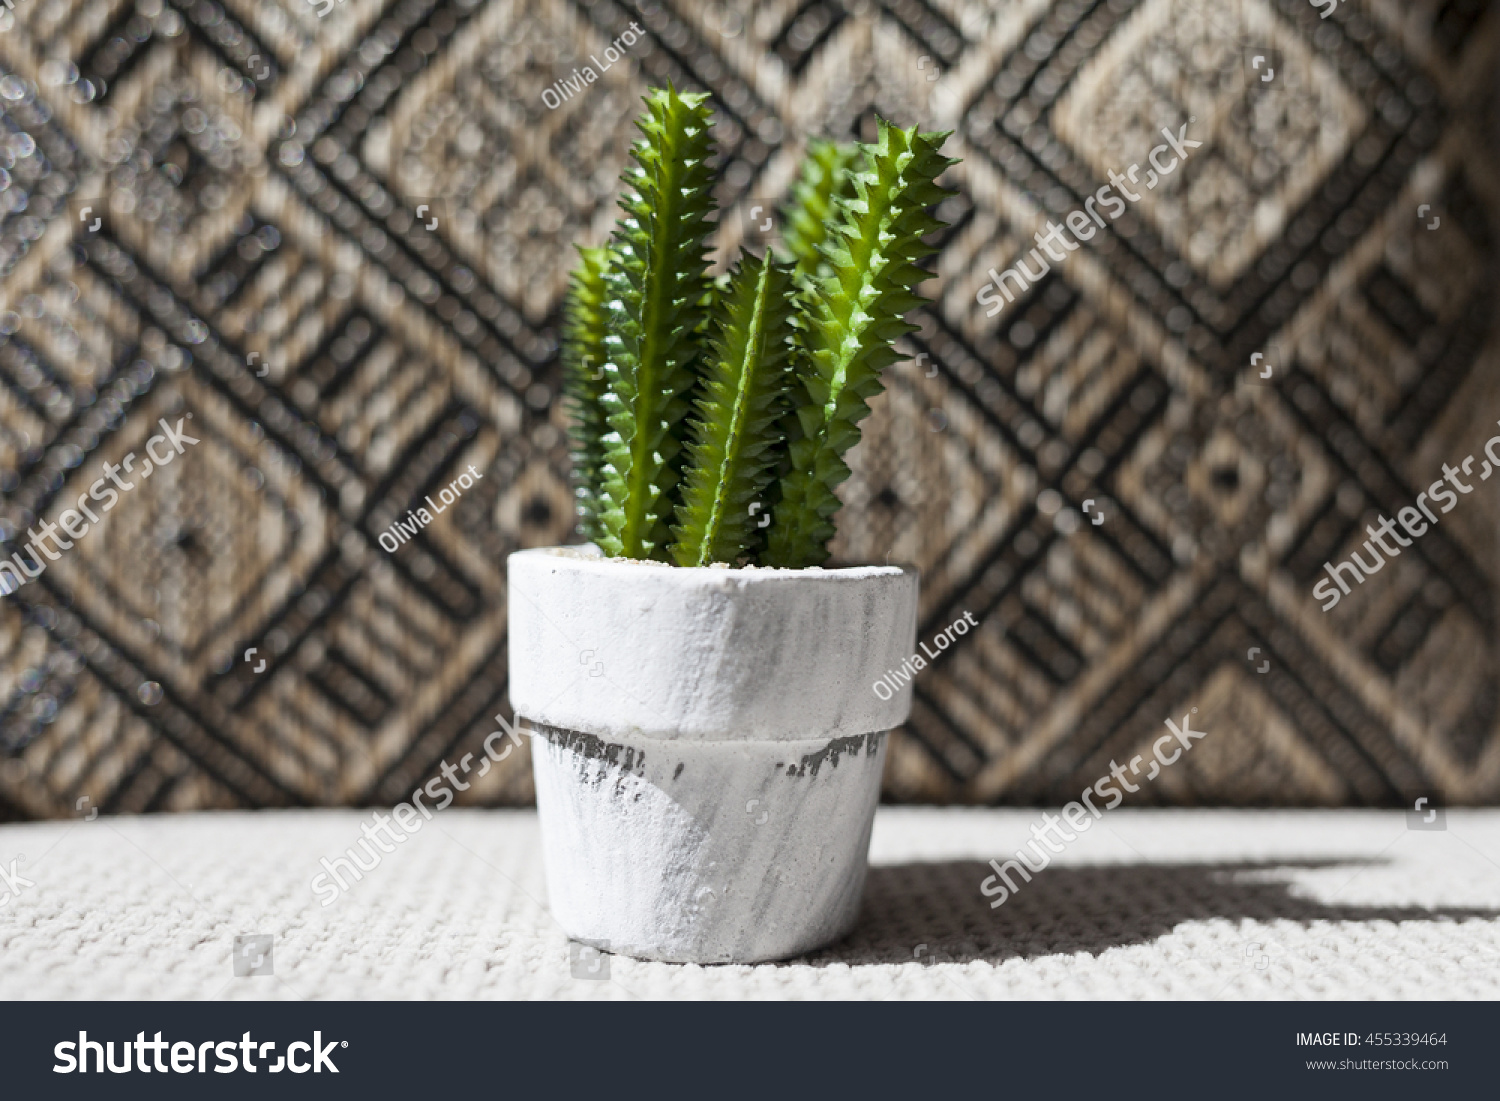 Royalty Free Cute Small Cactus On A White Flower Pot 455339464